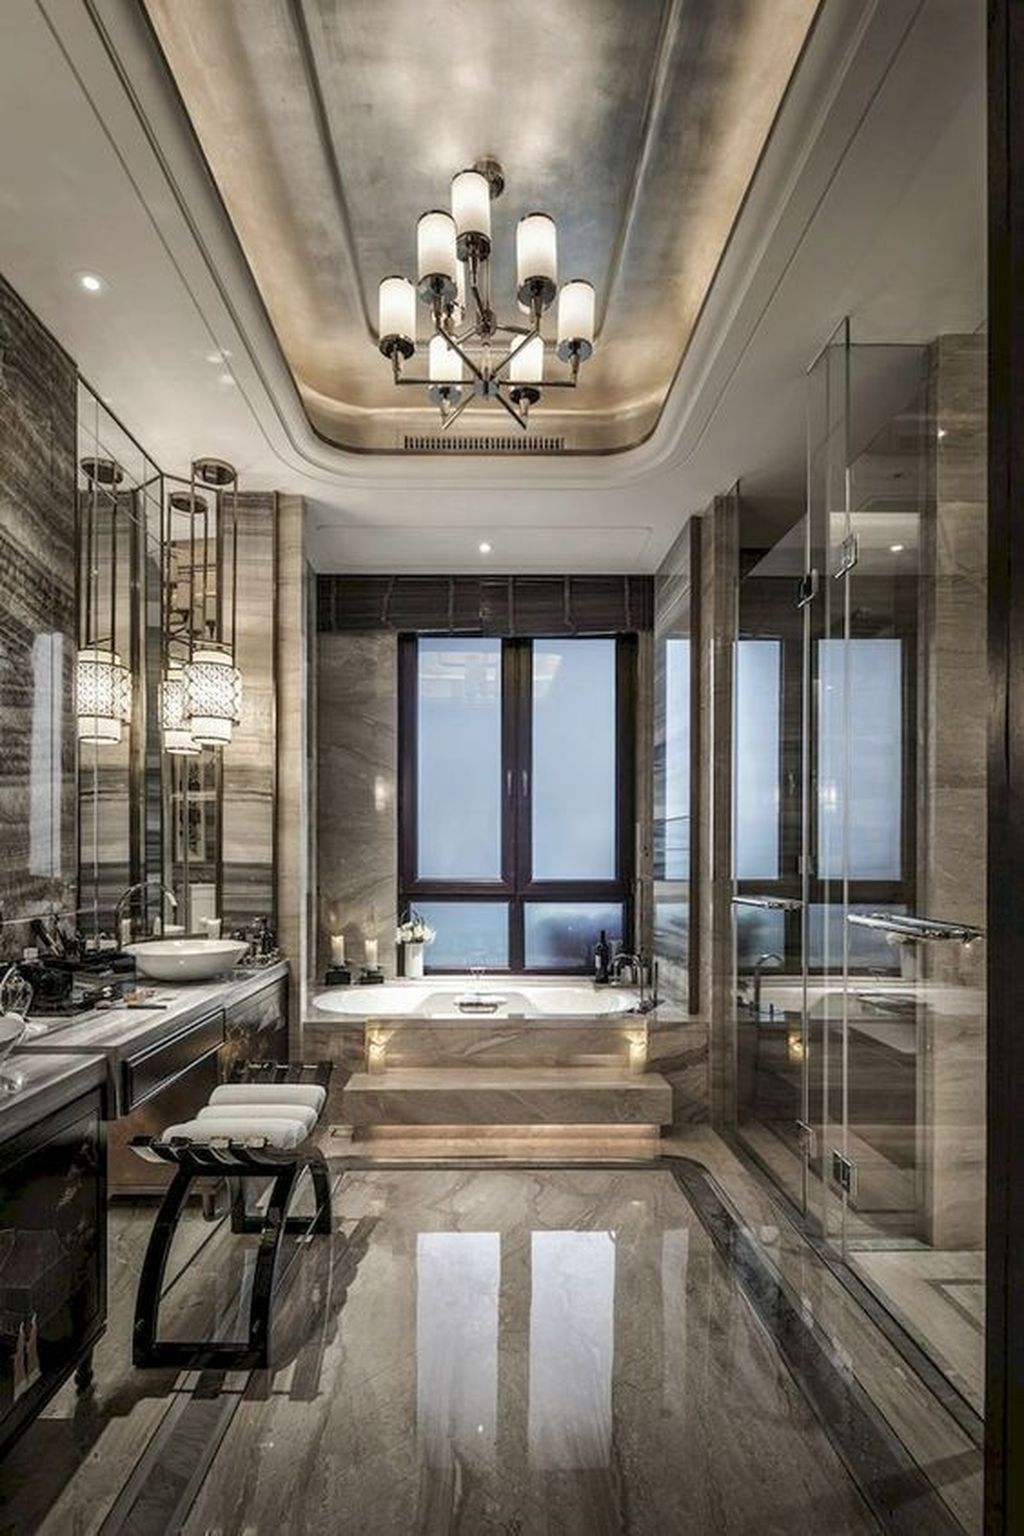 Luxury Bathroom Decoration Ideas For Enjoying Your Bath44